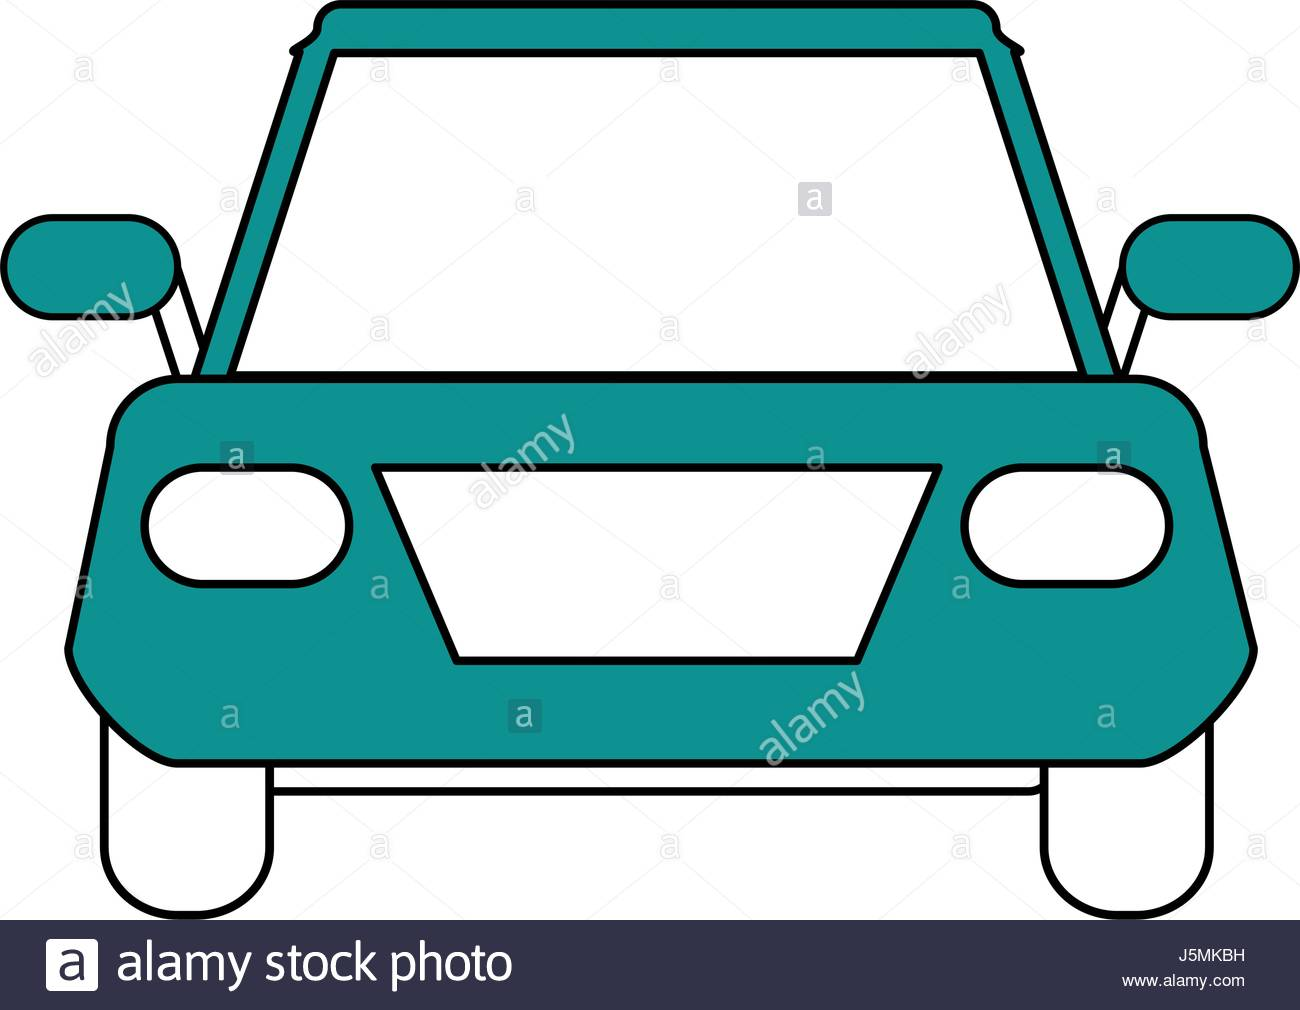 1300x1010 Color Silhouette Image Front View Automobile Vehicle Of Transport